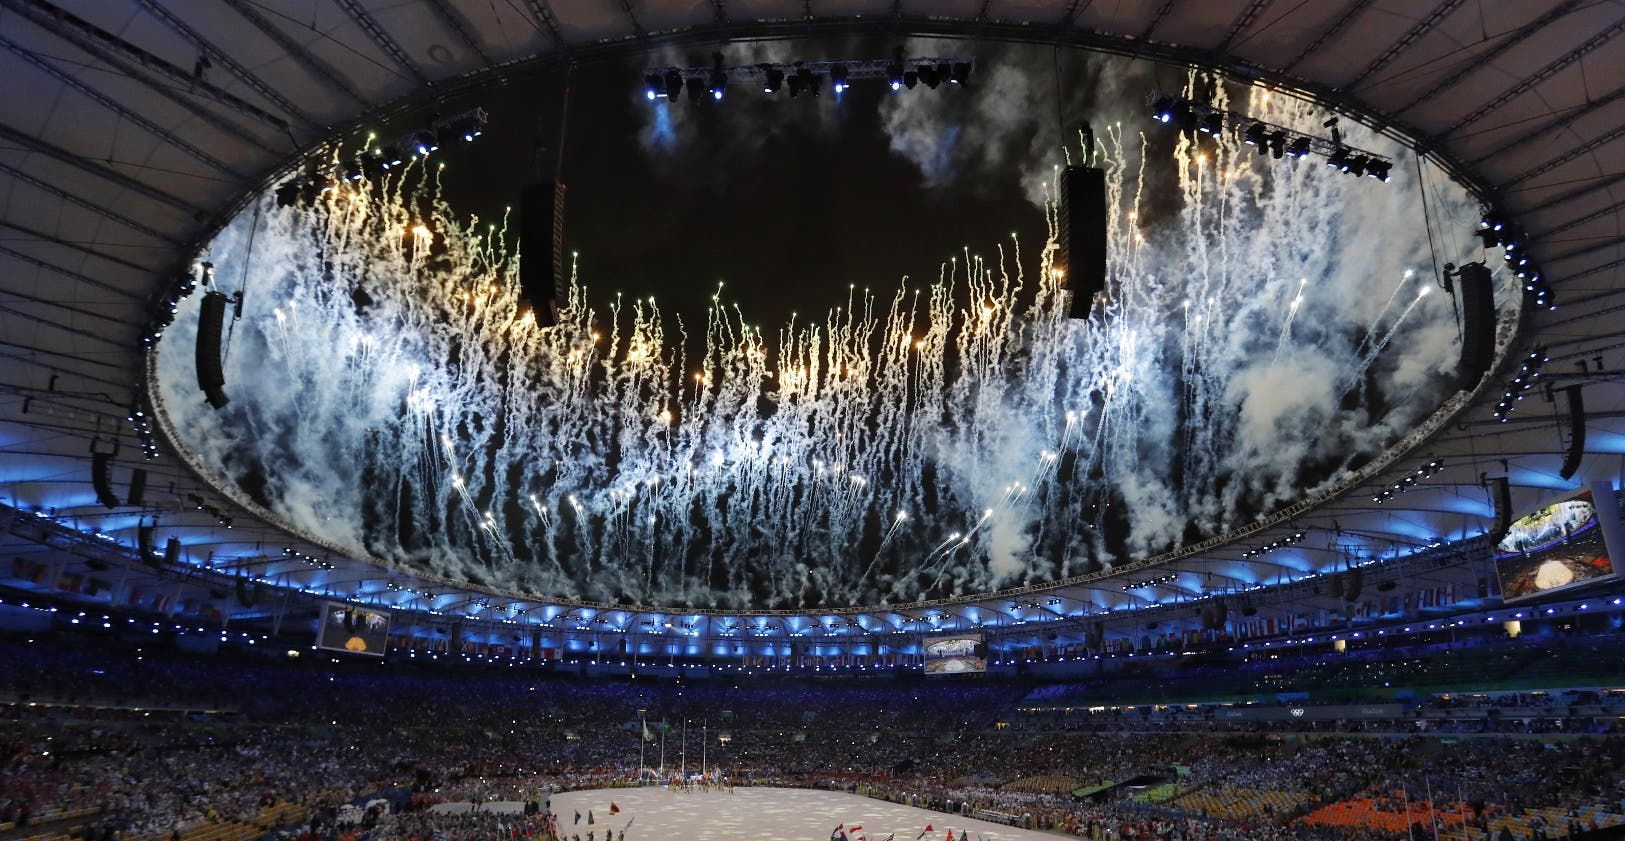 Fireworks explode during the closing ceremony for the Summer Olympics at Maracana stadium in Rio de Janeiro, Brazil, Sunday, Aug. 21, 2016. (AP Photo/Vincent Thian)